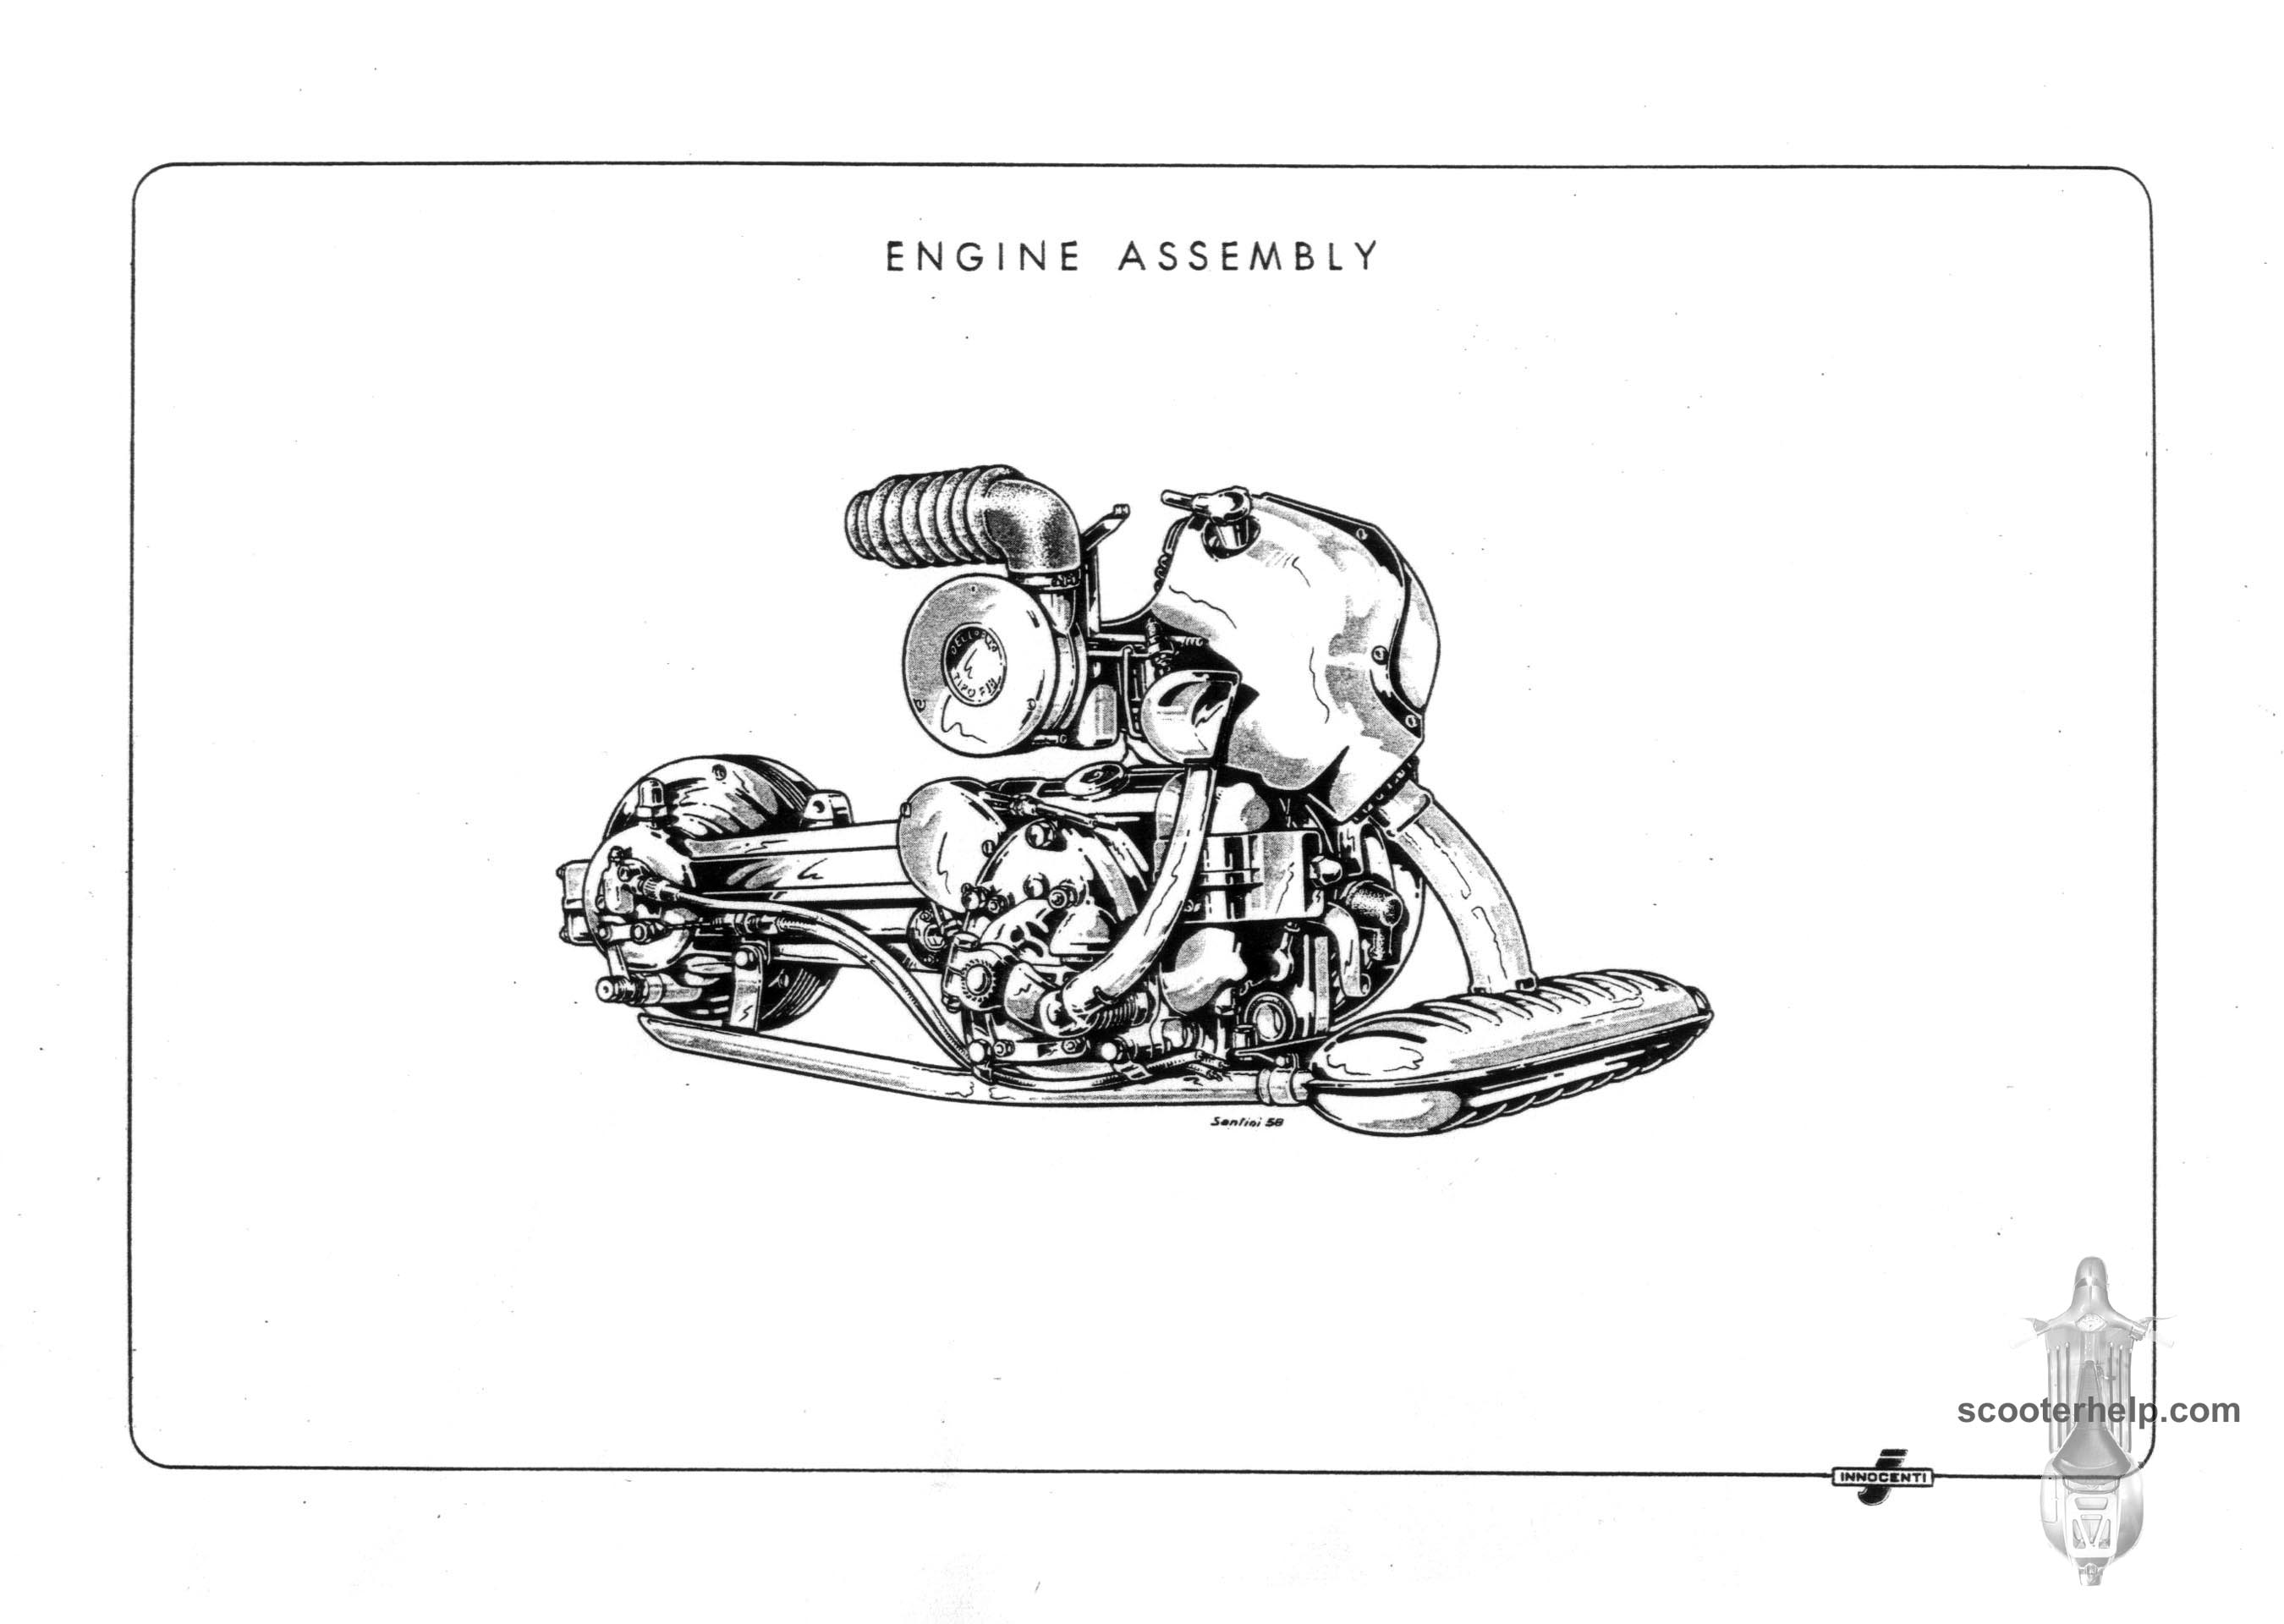 Lambretta D Ld Parts Book Chainsaw Engine Schematics If You Prefer A Slightly Lower Resolution 100 Dpipdf File Of All The Pages Click Here For 27 Mb Download